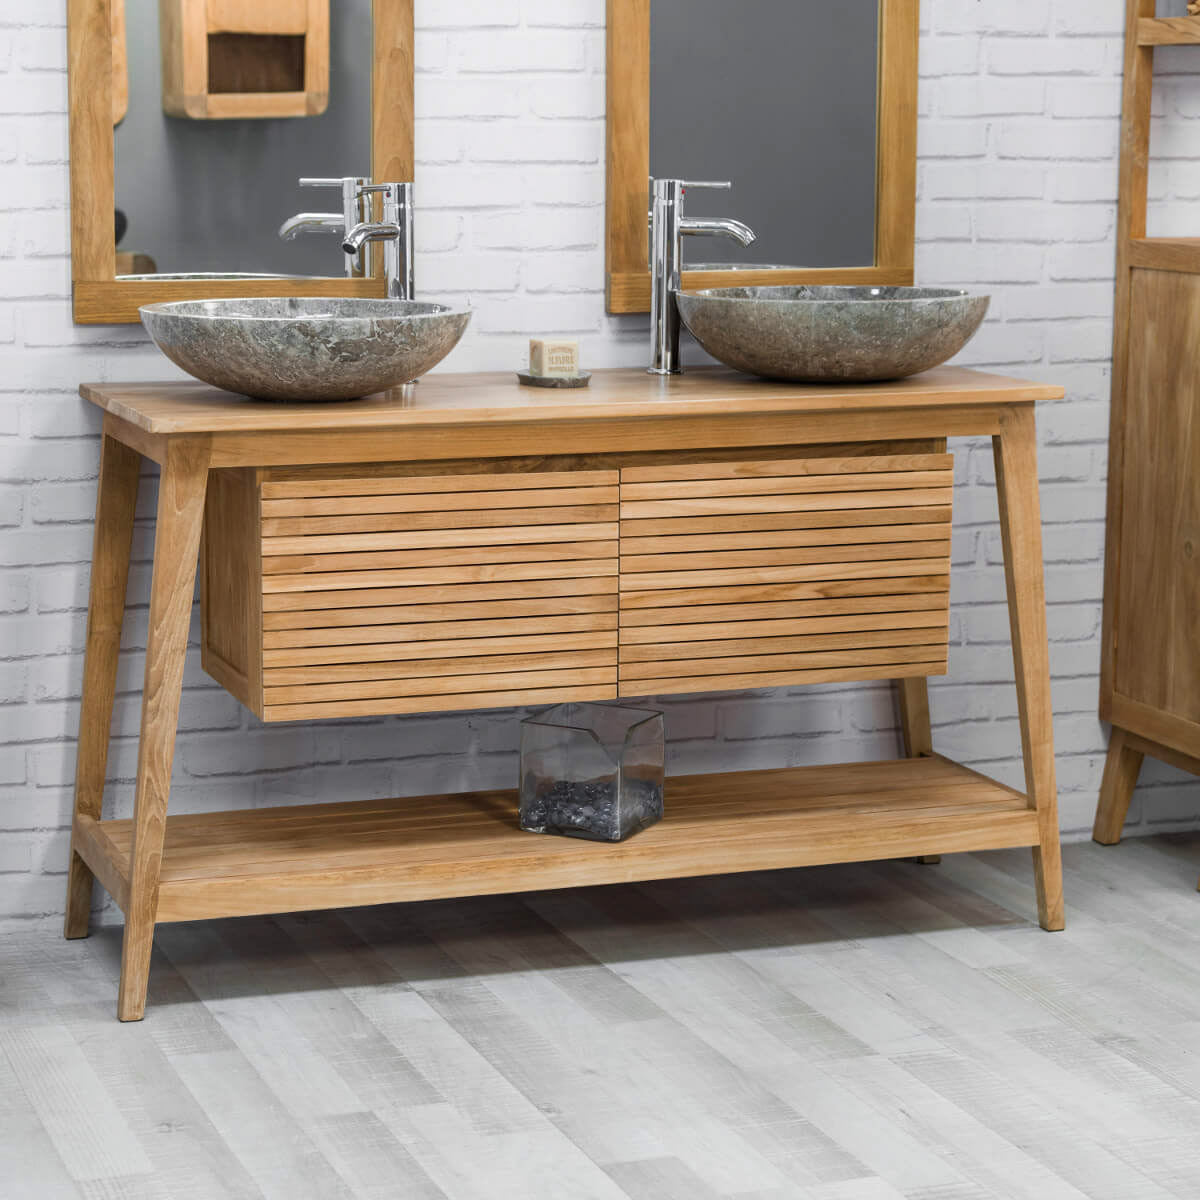 Meuble sous vasque double vasque en bois teck massif for Meuble collection tuff avenue